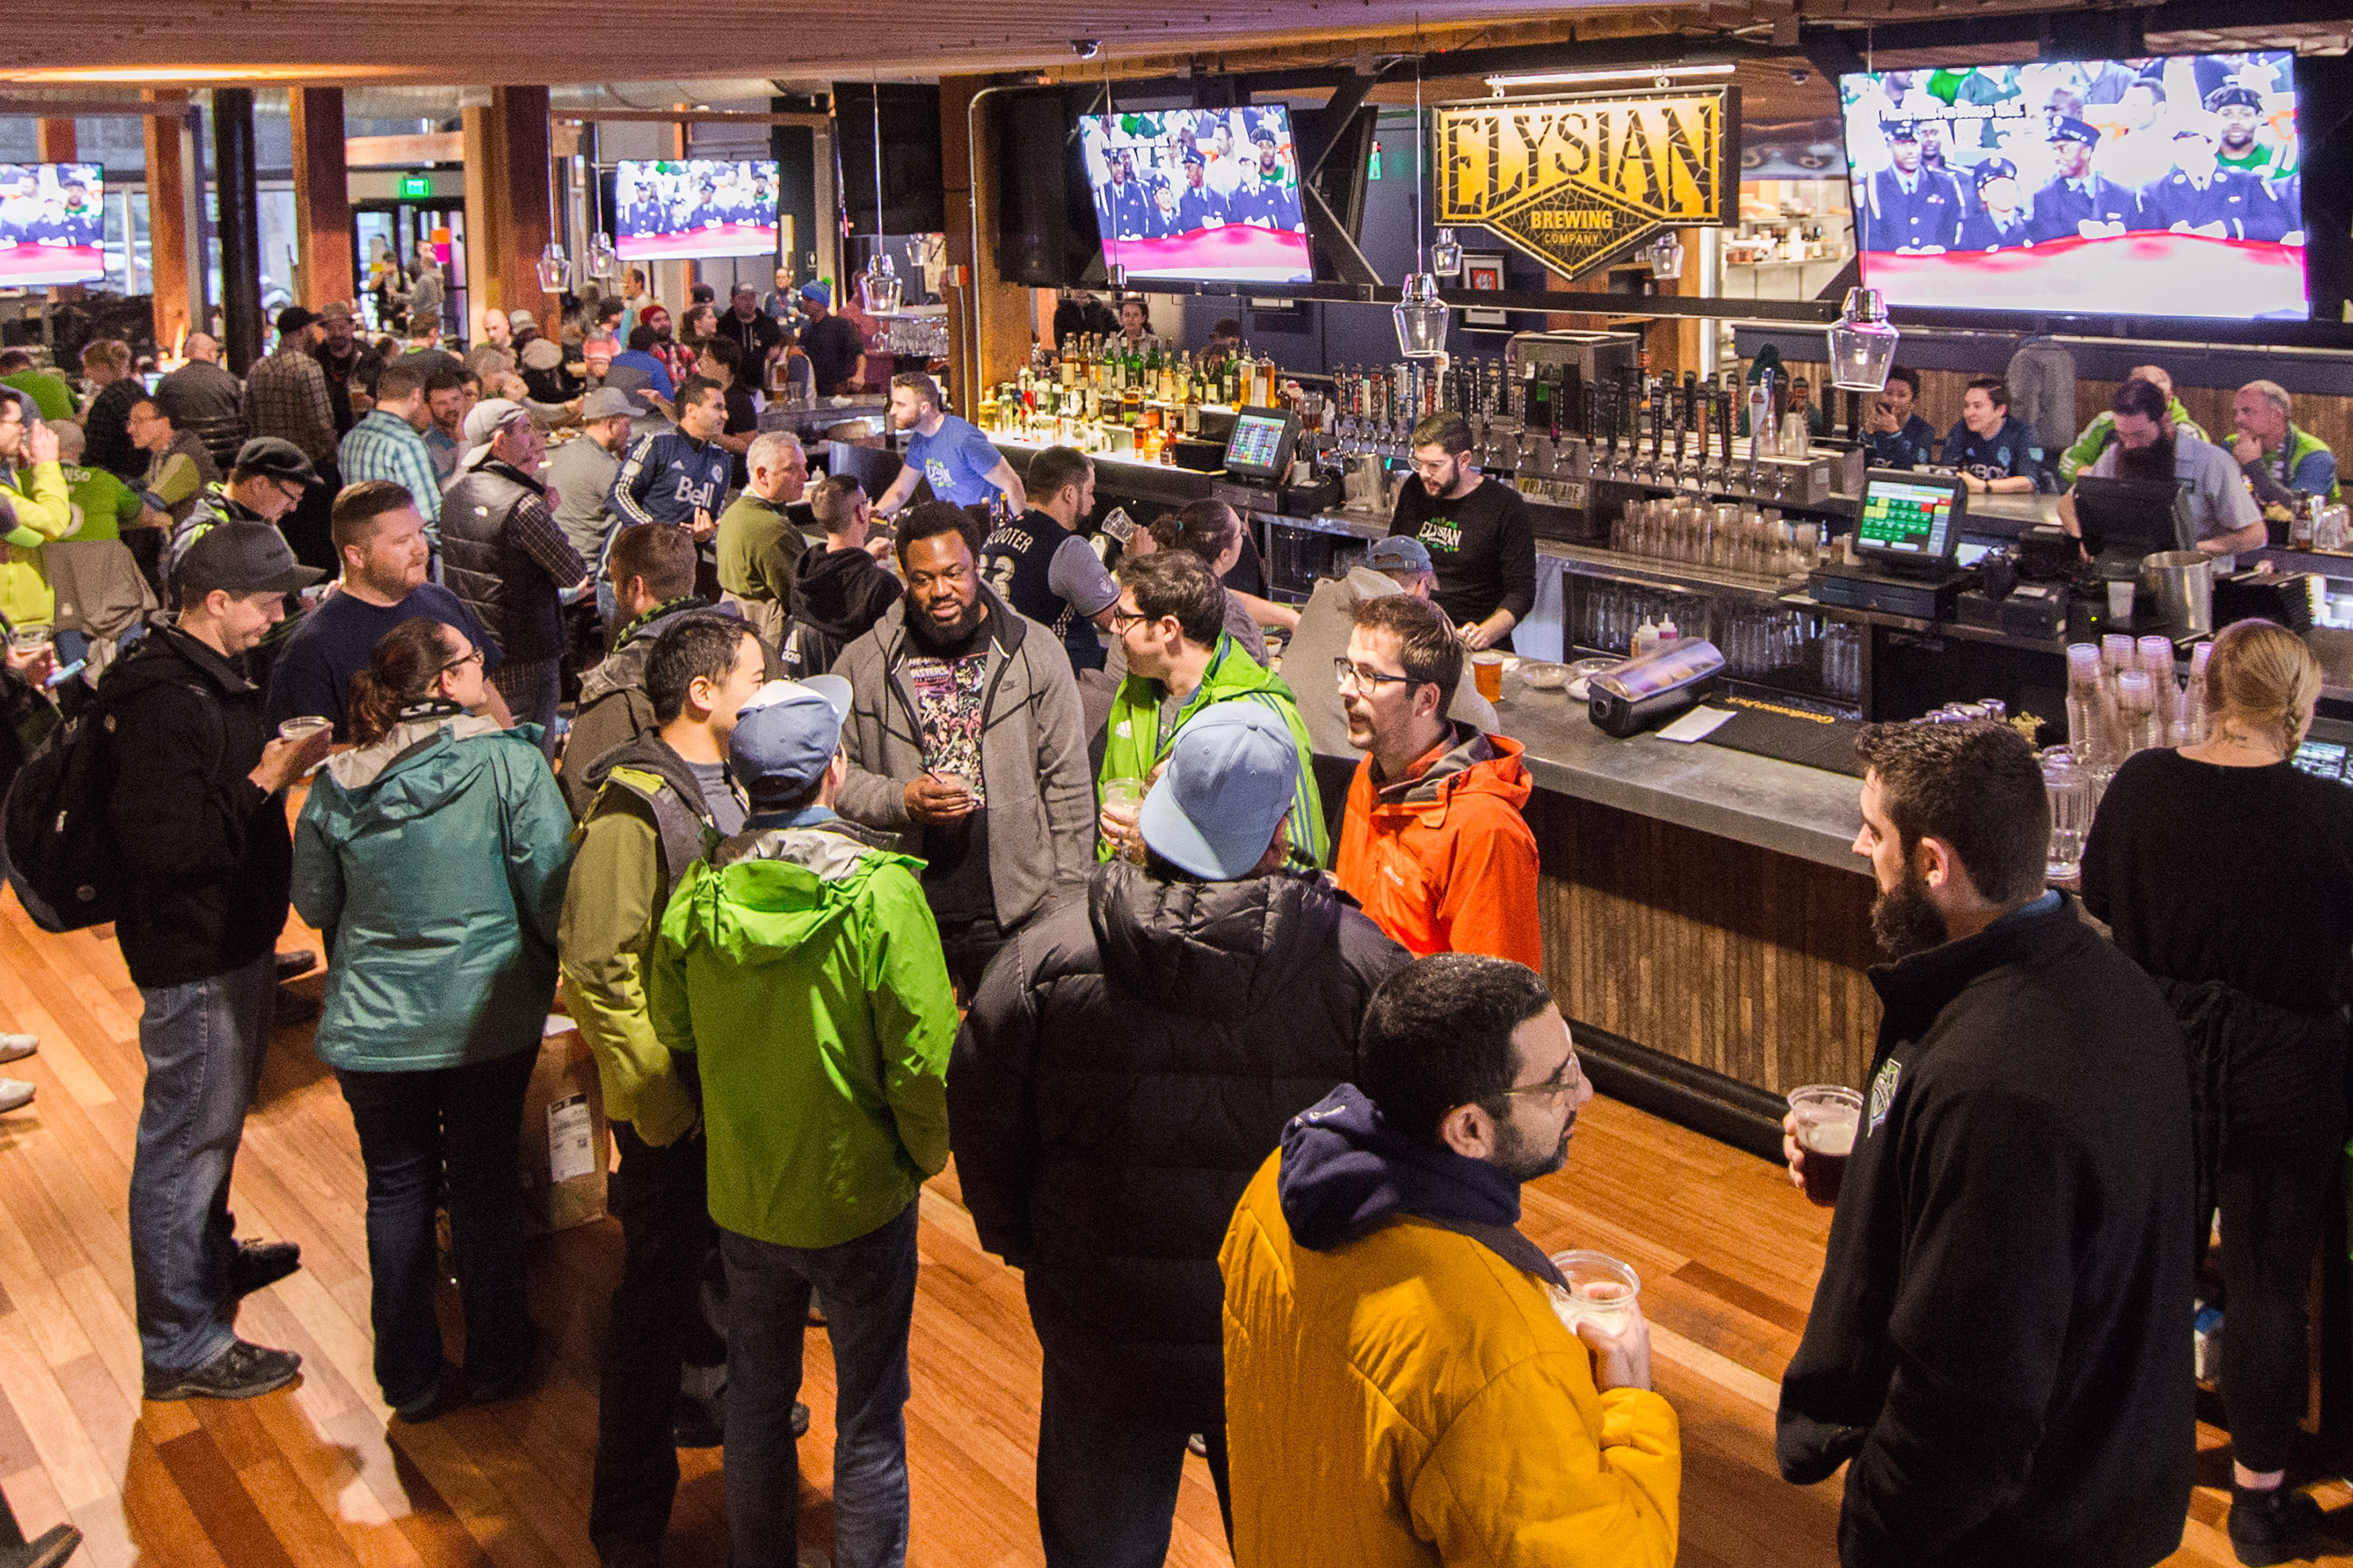 Crowds pack the Elysian Fields pub in Pioneer Square.